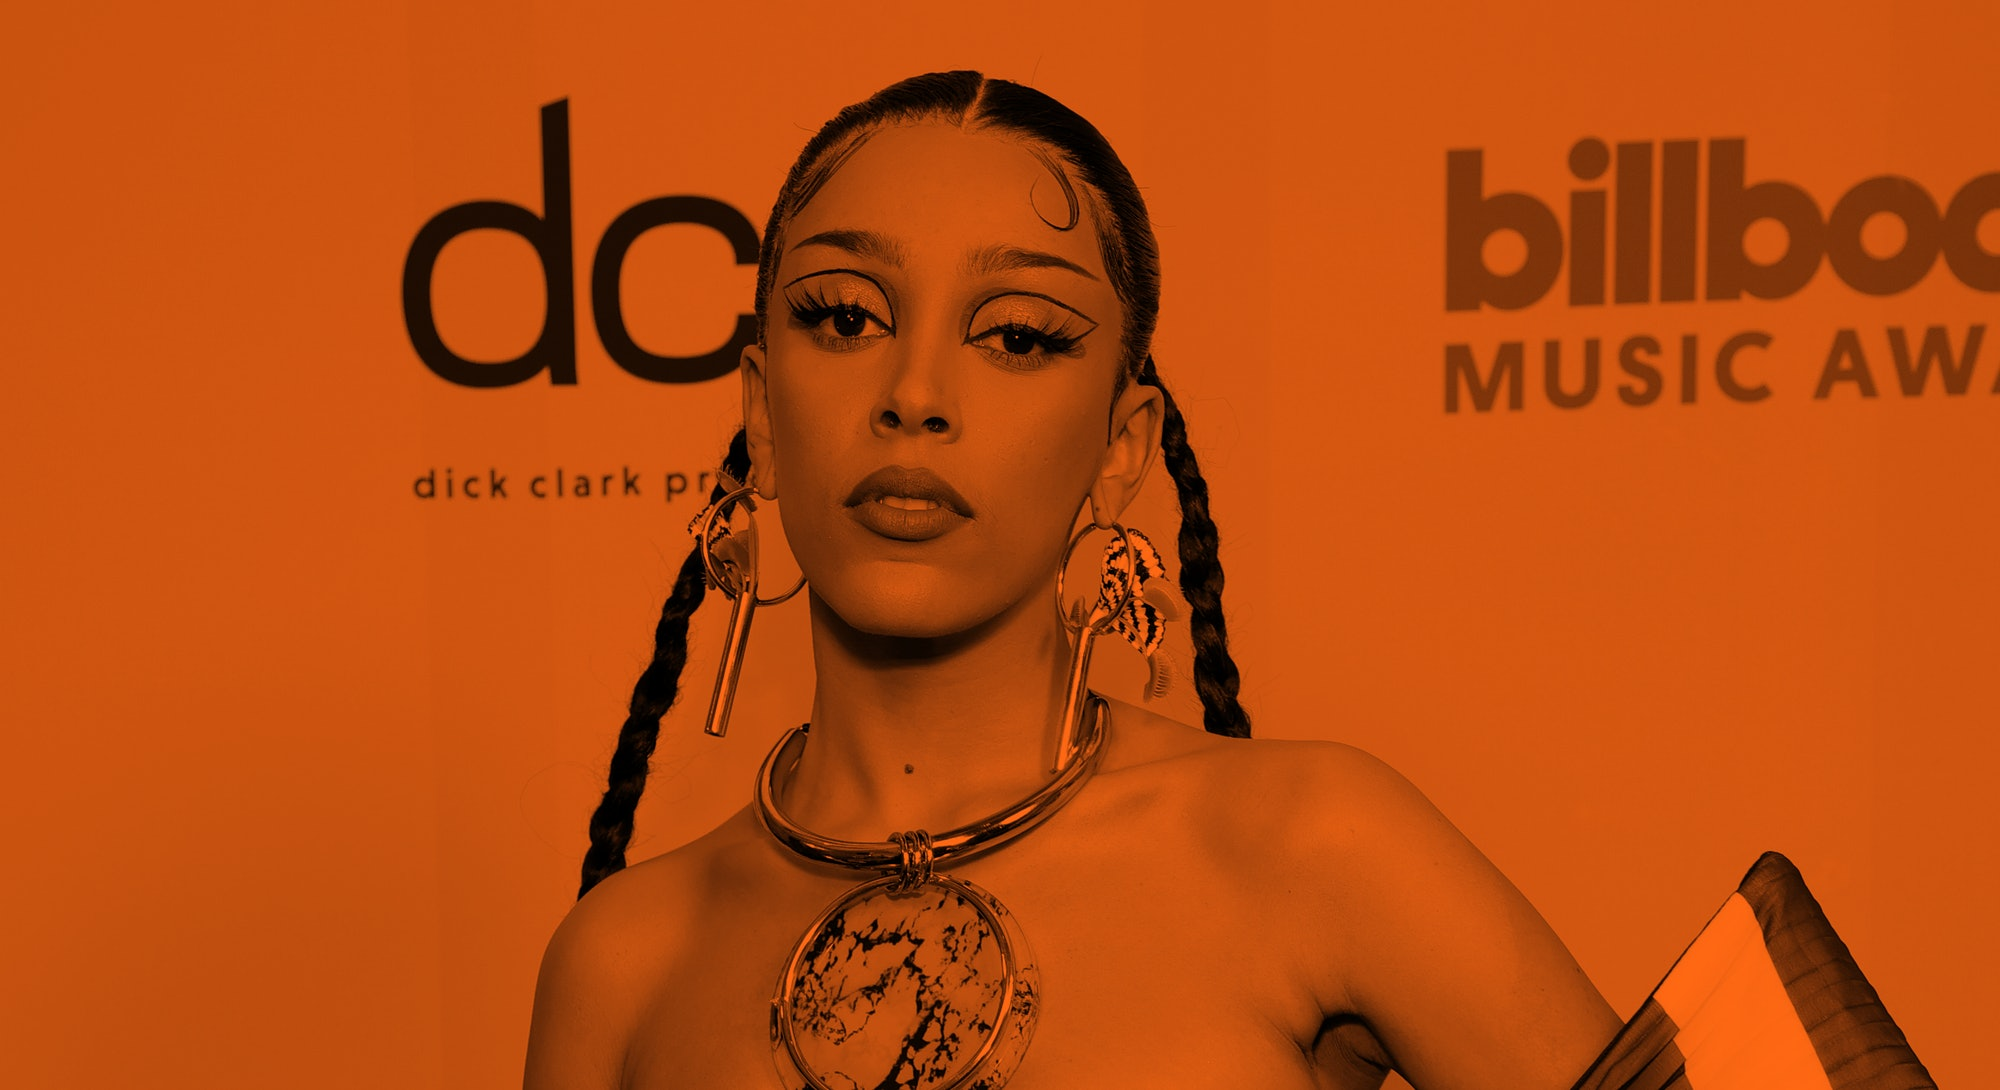 LOS ANGELES, CALIFORNIA - MAY 23: In this image released on May 23, Doja Cat poses backstage for the 2021 Billboard Music Awards, broadcast on May 23, 2021 at Microsoft Theater in Los Angeles, California. (Photo by Rich Fury/Getty Images for dcp)